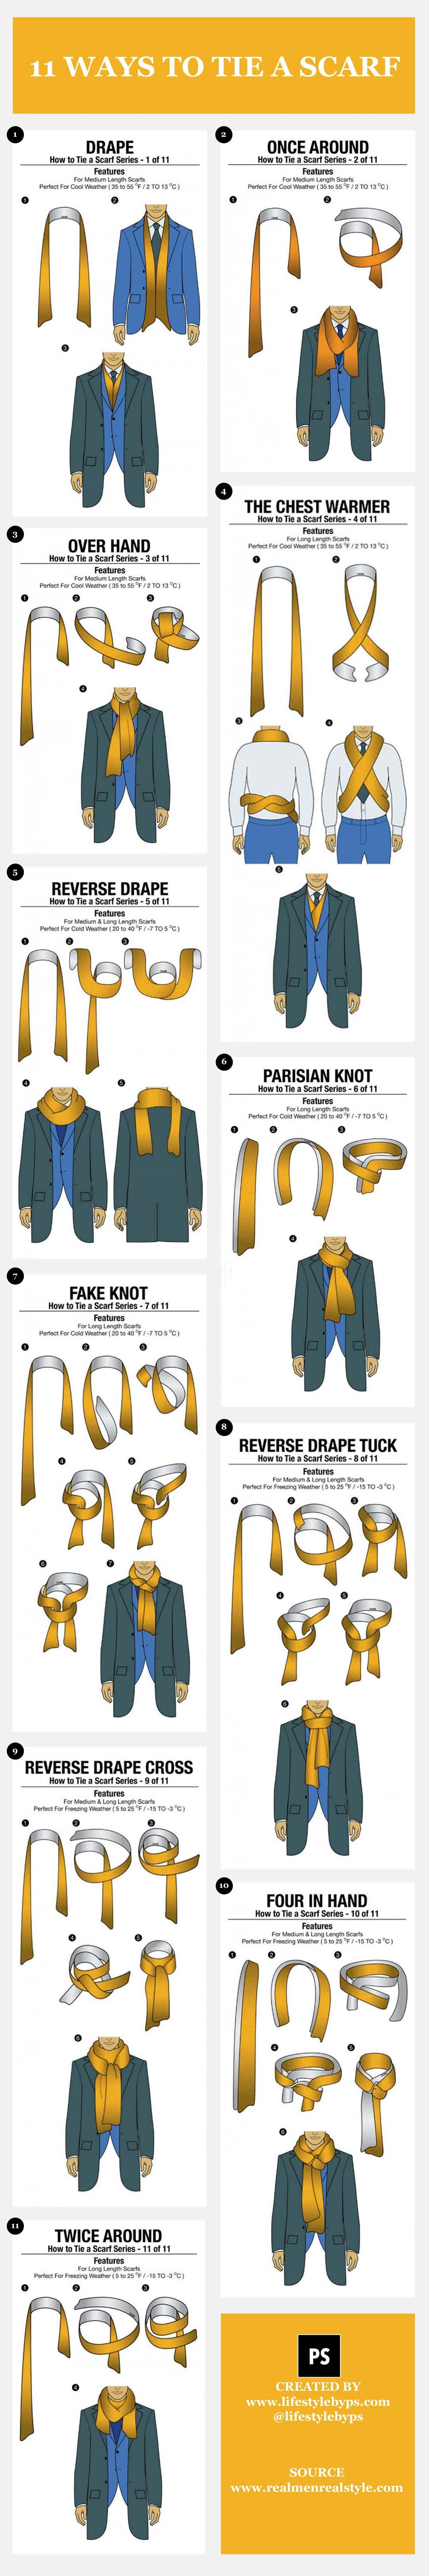 How To Wear Men's Scarf - Infographic | LIFESTYLE BY PS